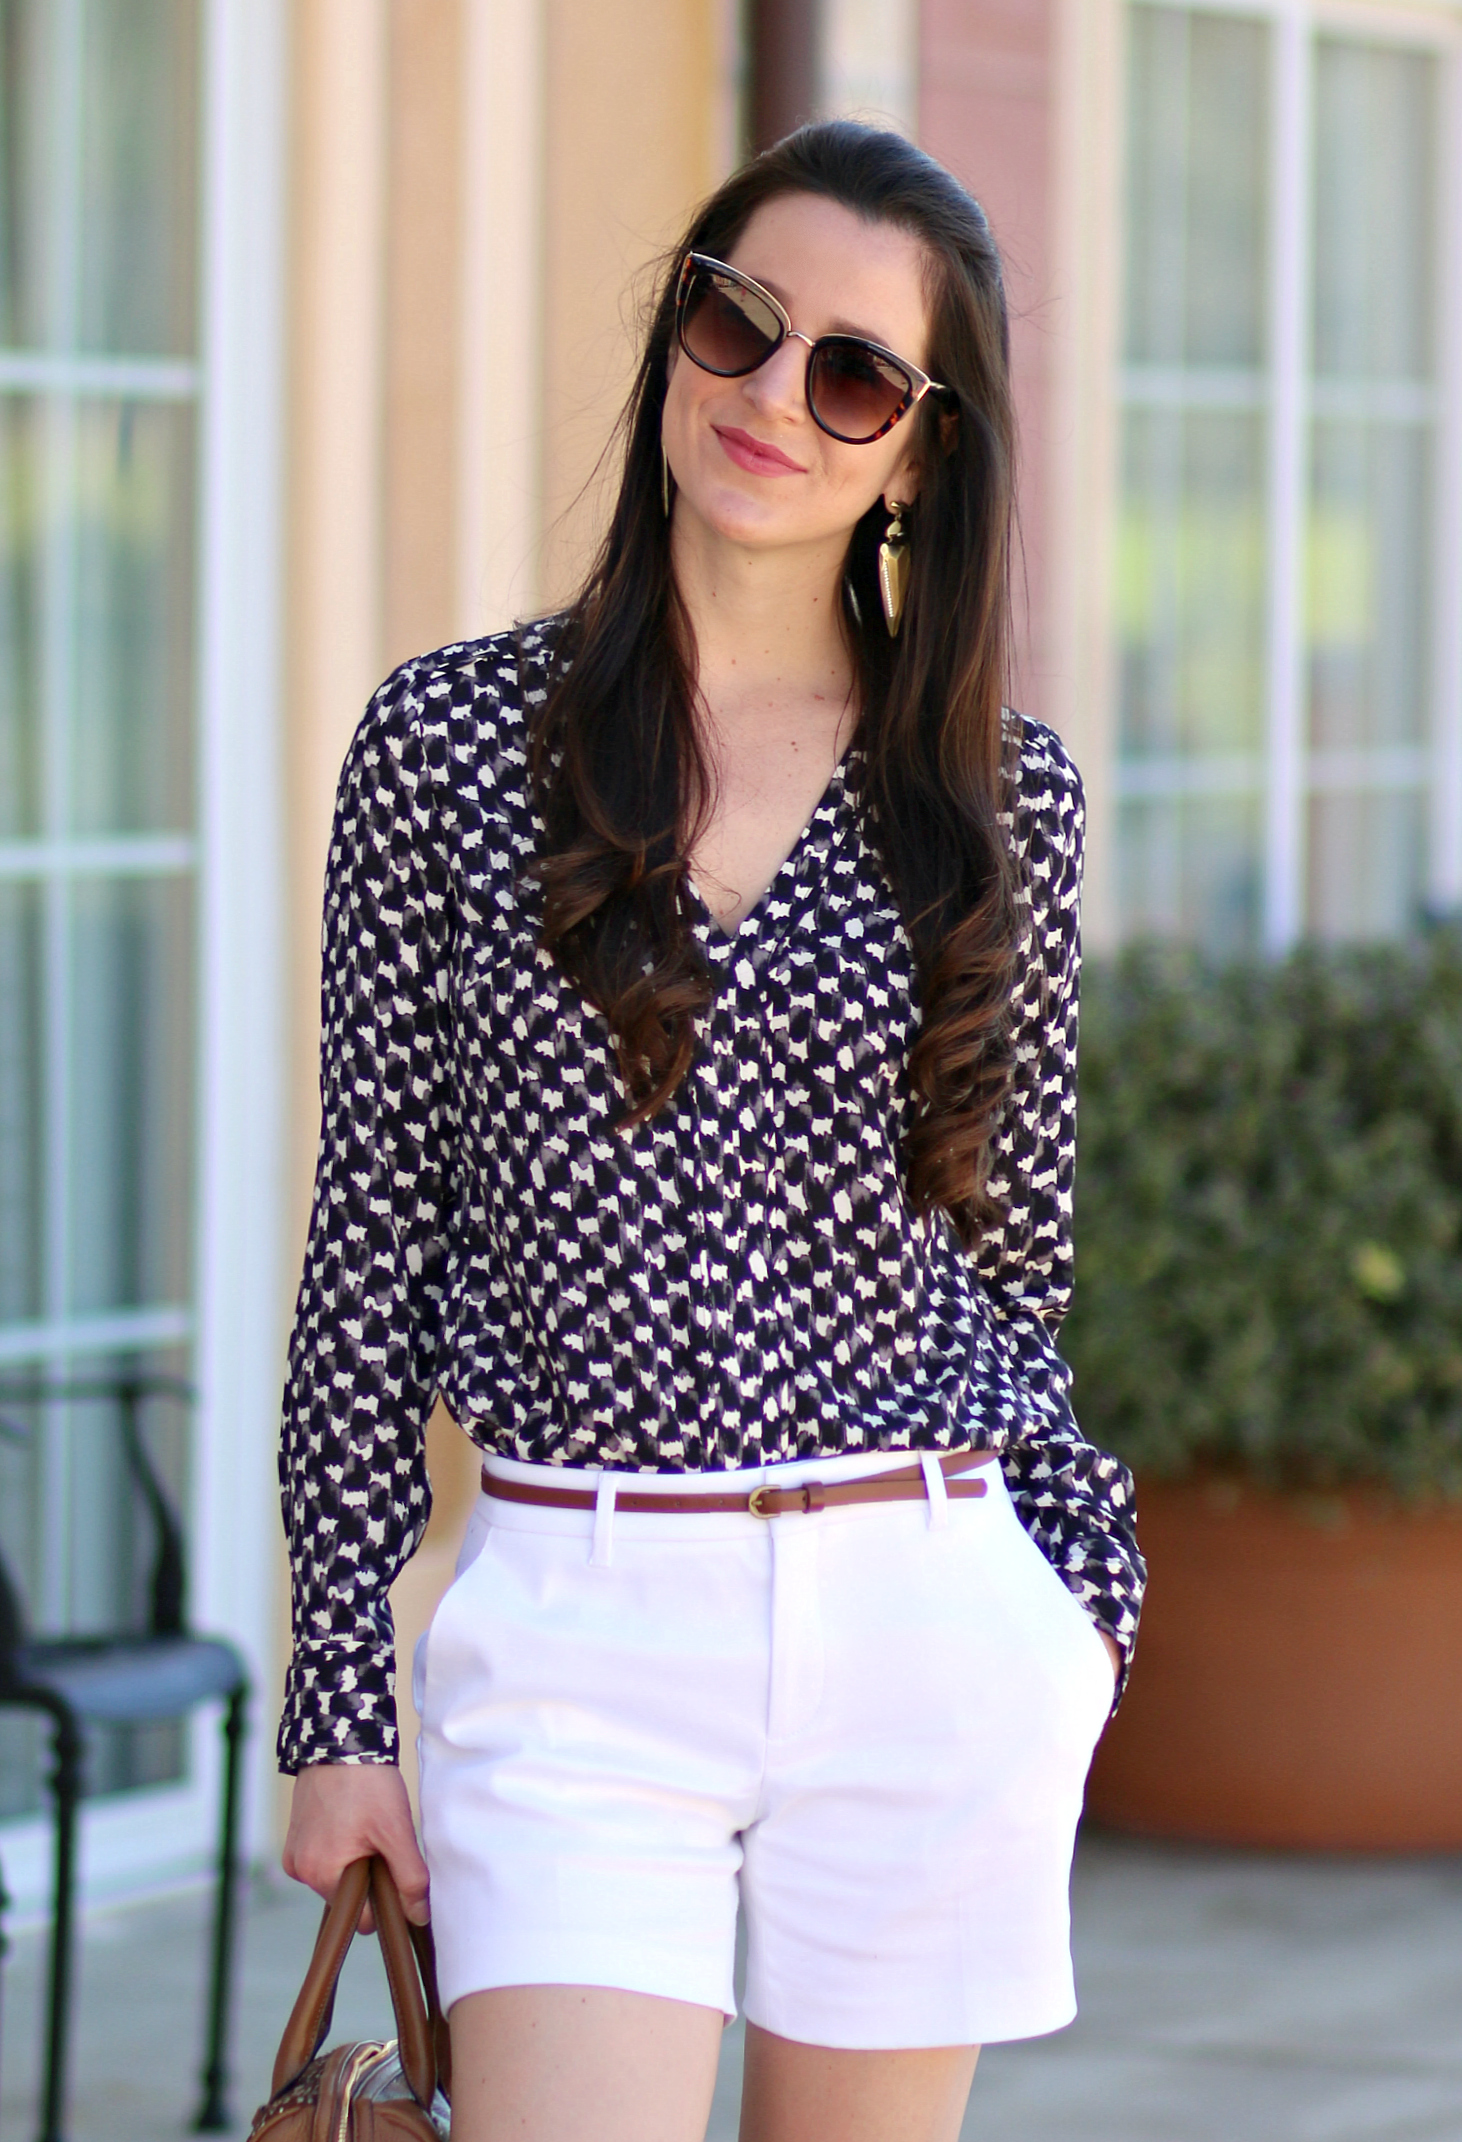 A versatile work top from Banana Republic that can be dressed up with jeans and heels or down with shorts and cute ballet flats